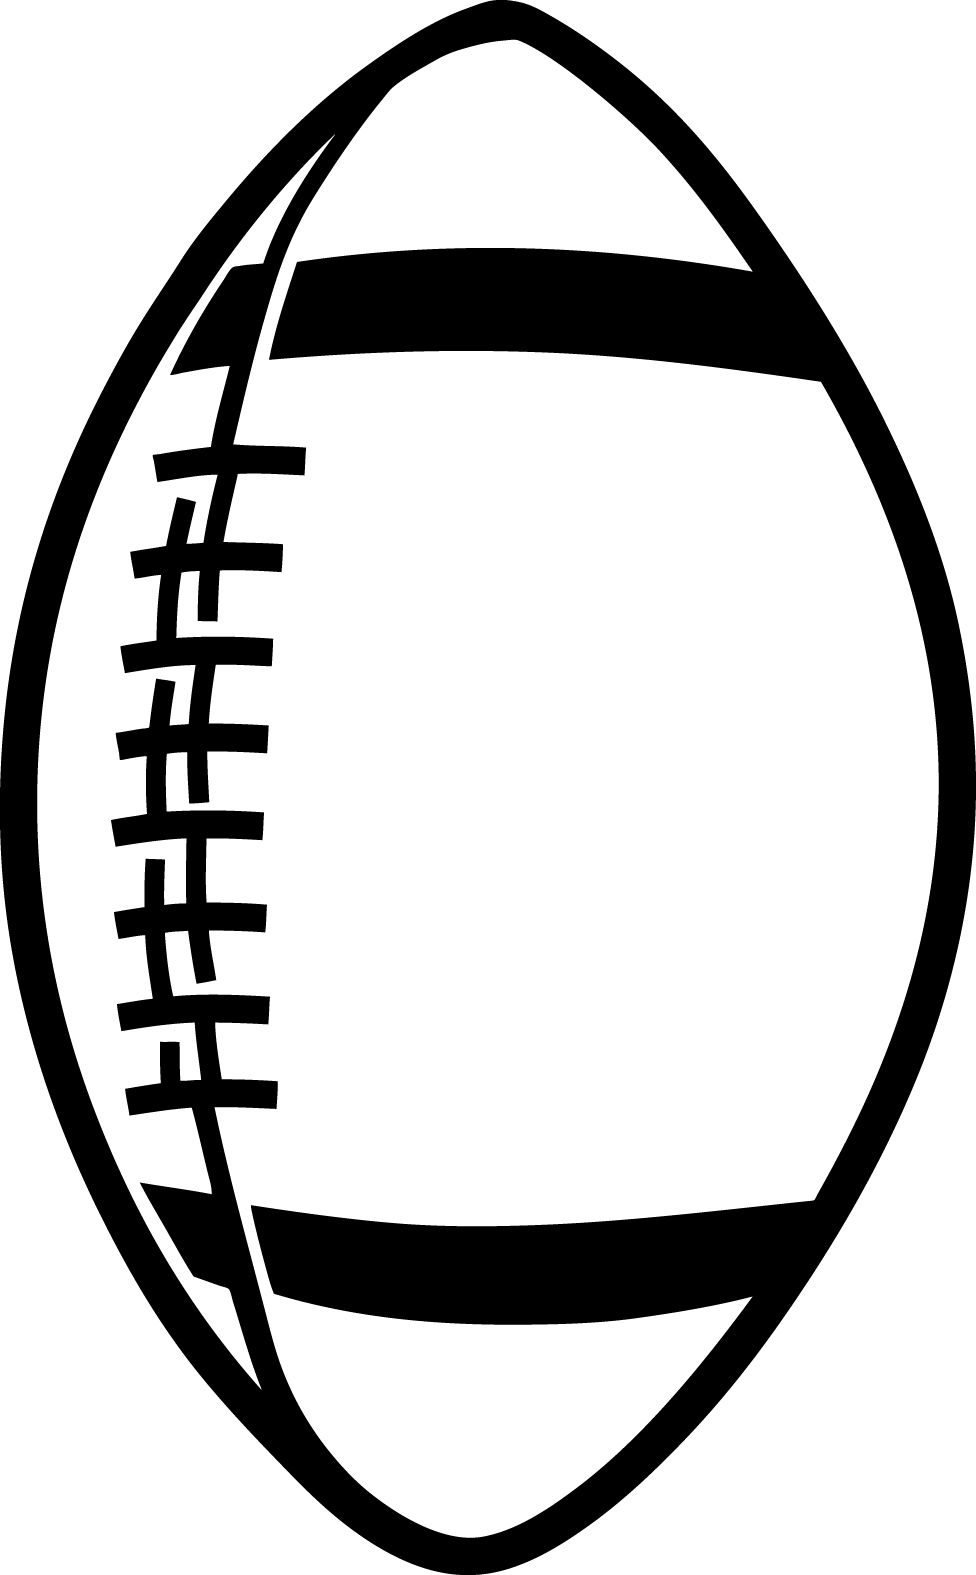 976x1575 Free Football Black And White Clipart Image